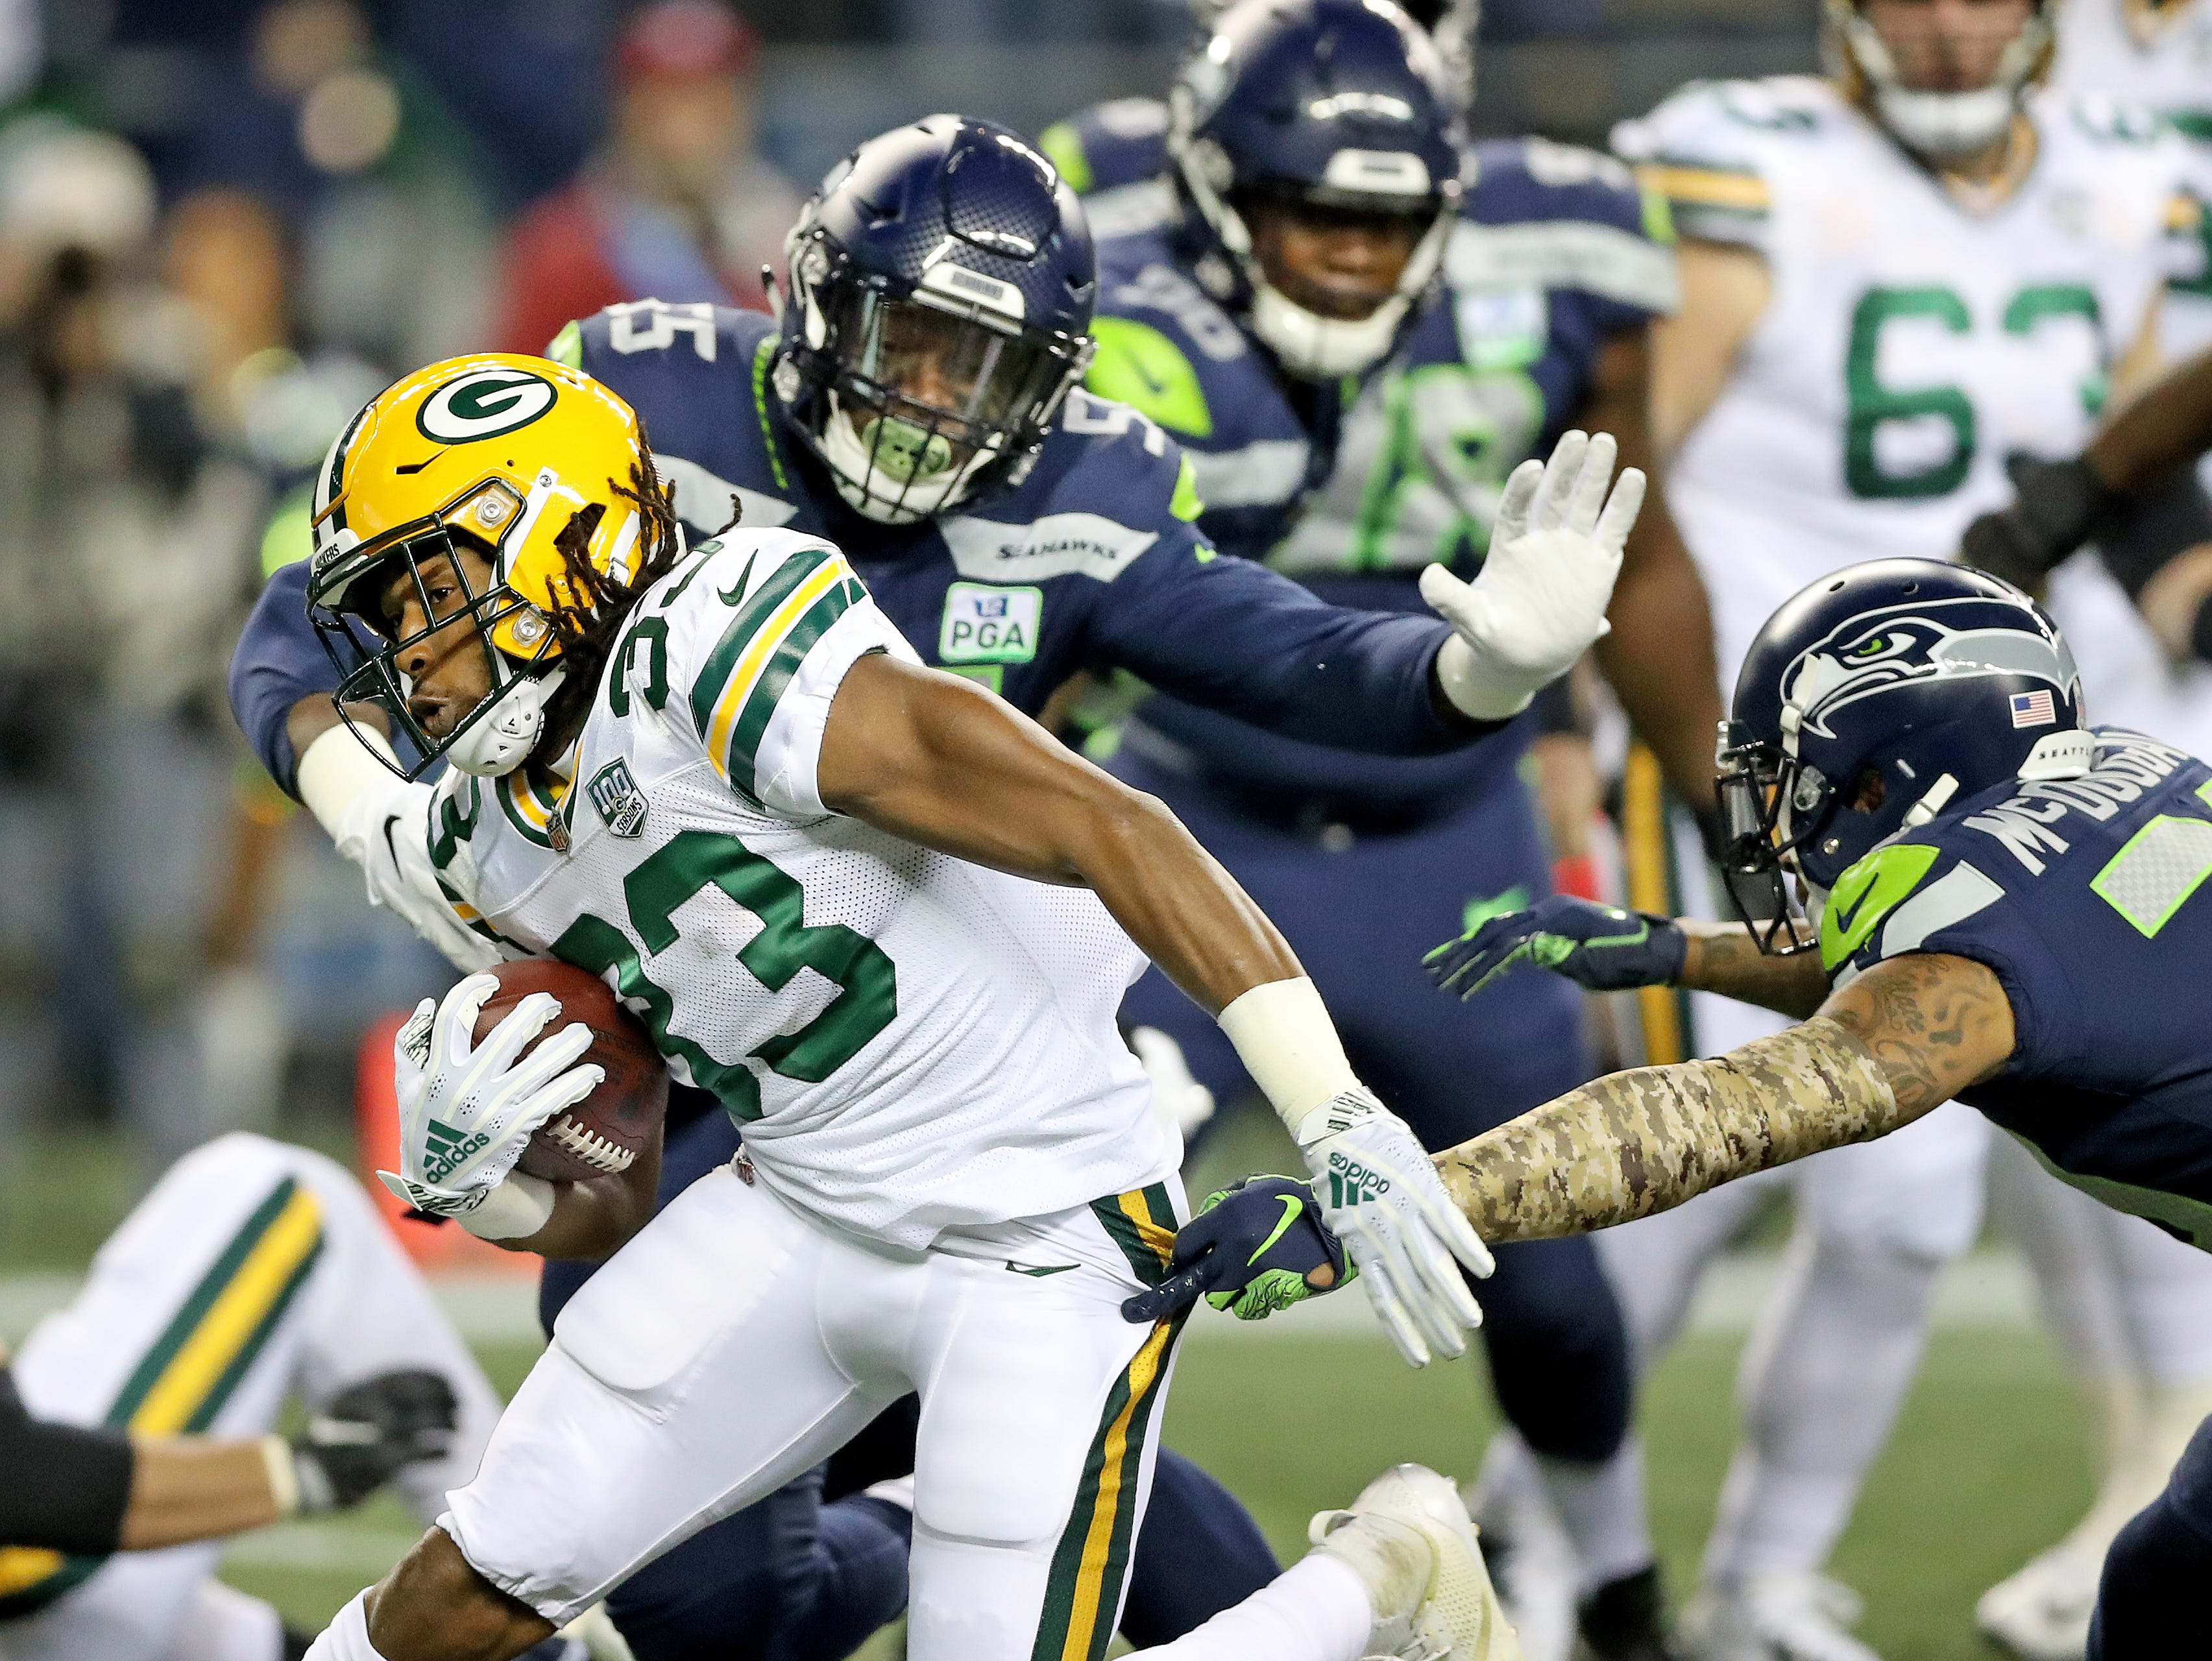 Green Bay Packers running back Aaron Jones (33) zigzags through the defense against the Seattle Seahawks at CenturyLink Field Thursday, November 15, 2018 in Seattle, WA. Jim Matthews/USA TODAY NETWORK-Wis